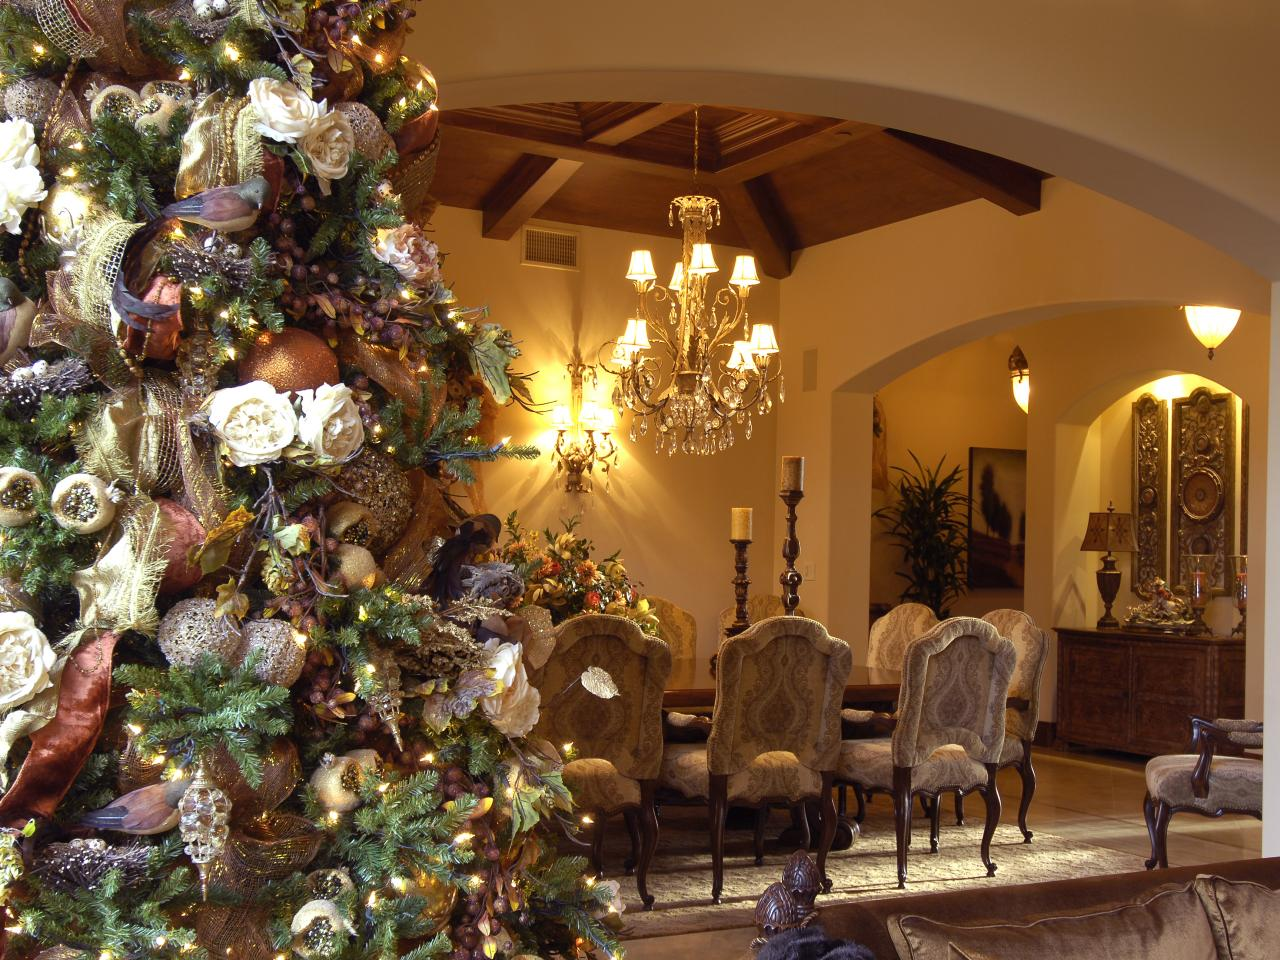 Christmas tree decorating ideas interior design styles Christmas interior decorating ideas